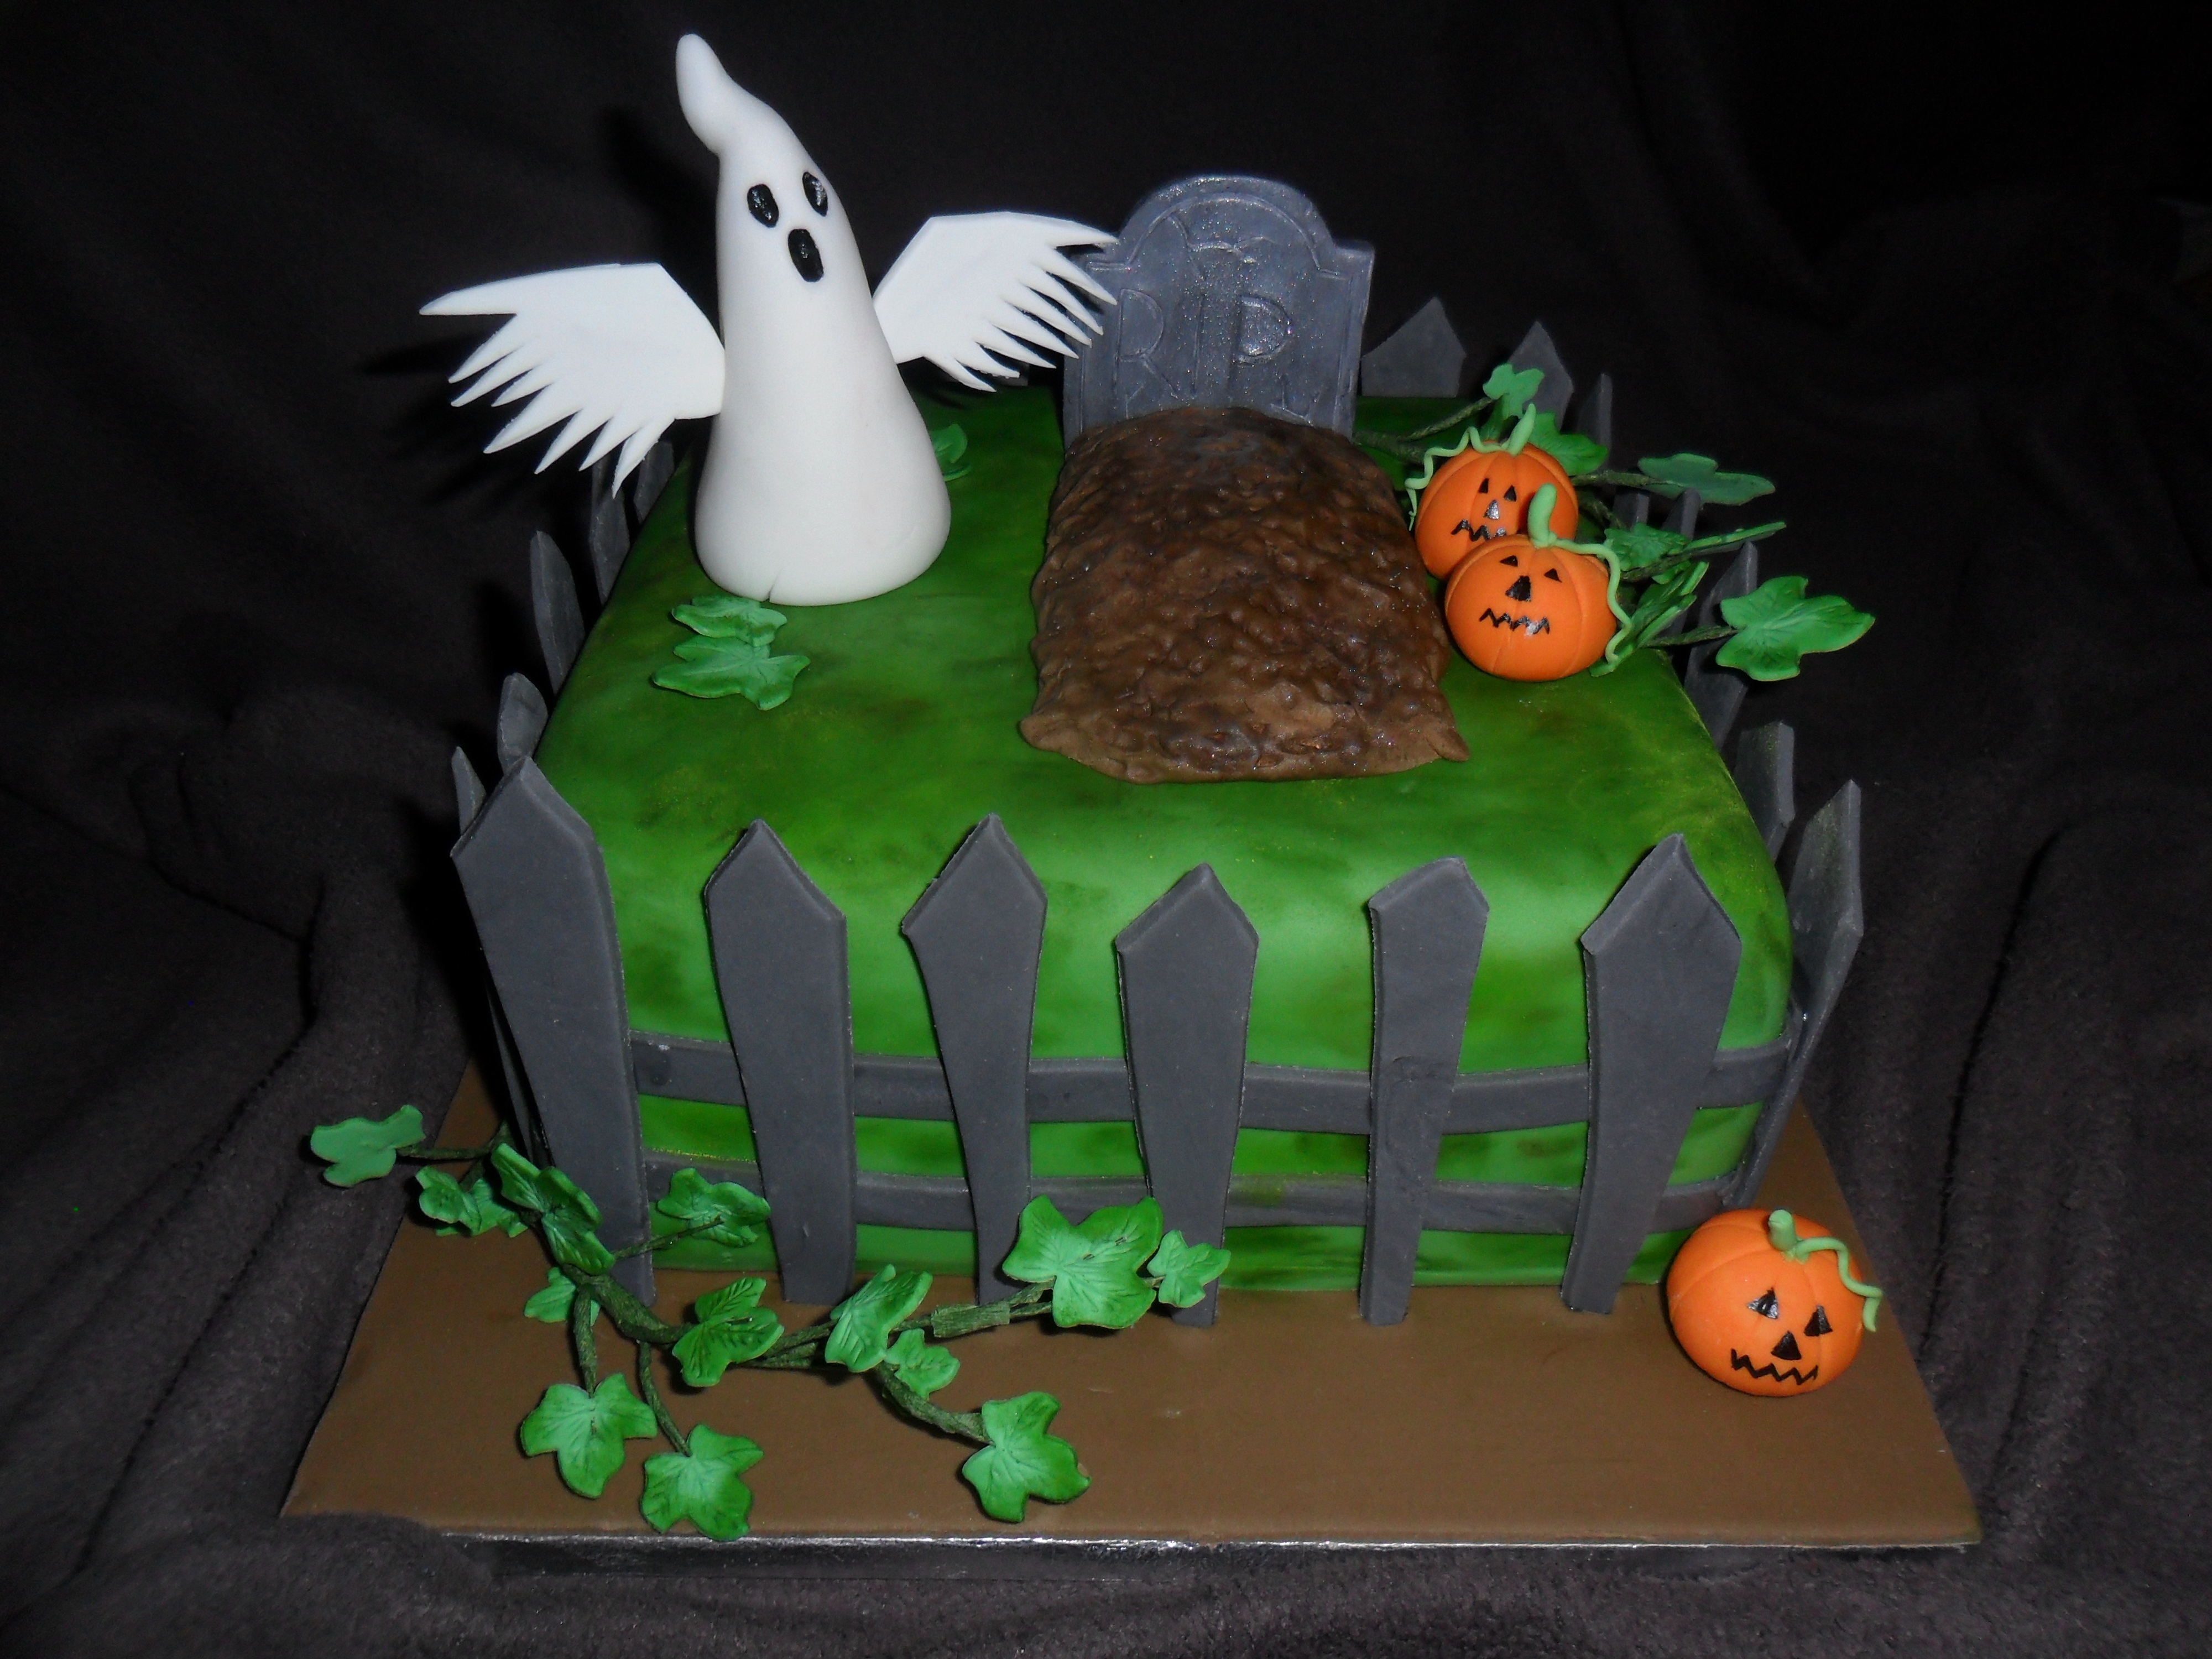 Halloween Graveyard And Edible Ghost Birthday Cake all 100% edible